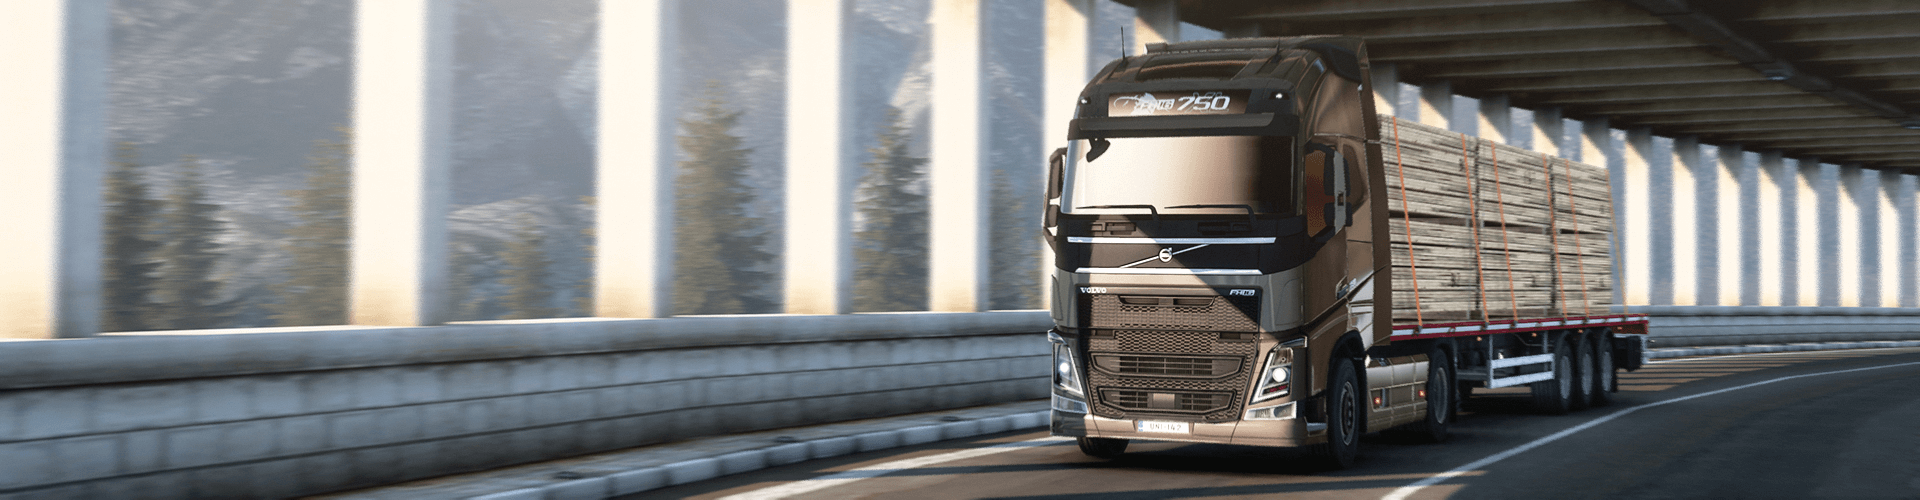 Official Convoy - August 2021